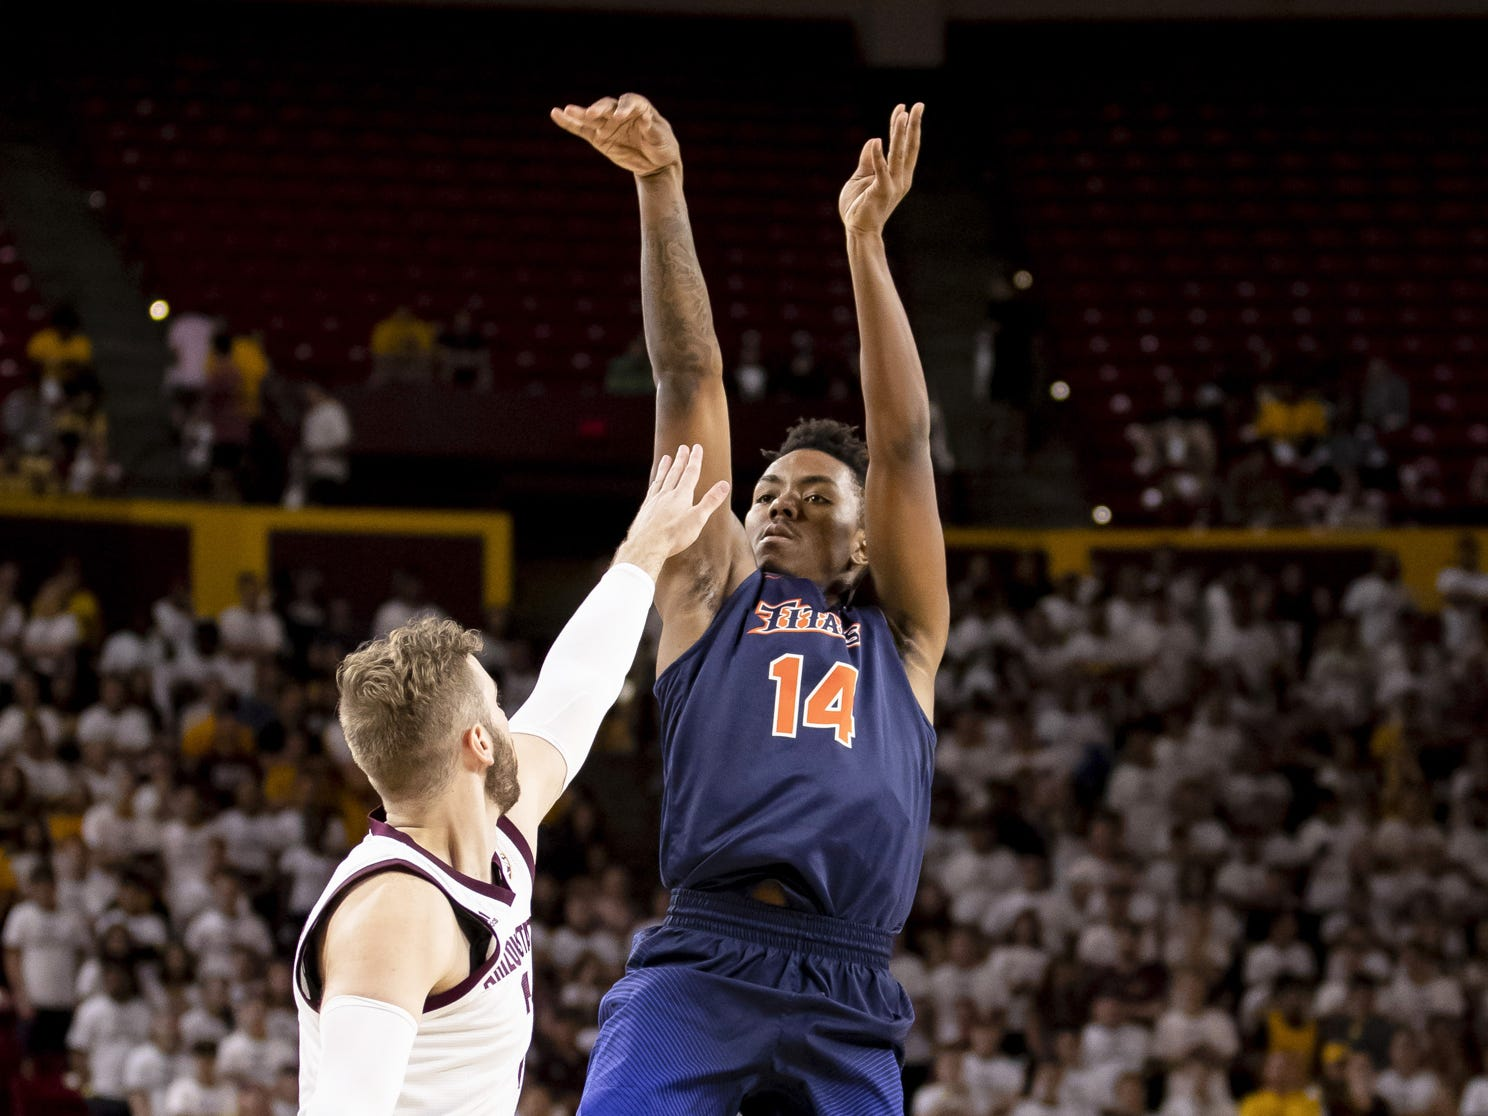 Guard Khalil Ahmad (14) of the Cal State Fullerton Titans shoots against forward Mickey Mitchell (3) of the Arizona State Sun Devils at Wells Fargo Arena on Tuesday, November 6, 2018 in Tempe, Arizona.